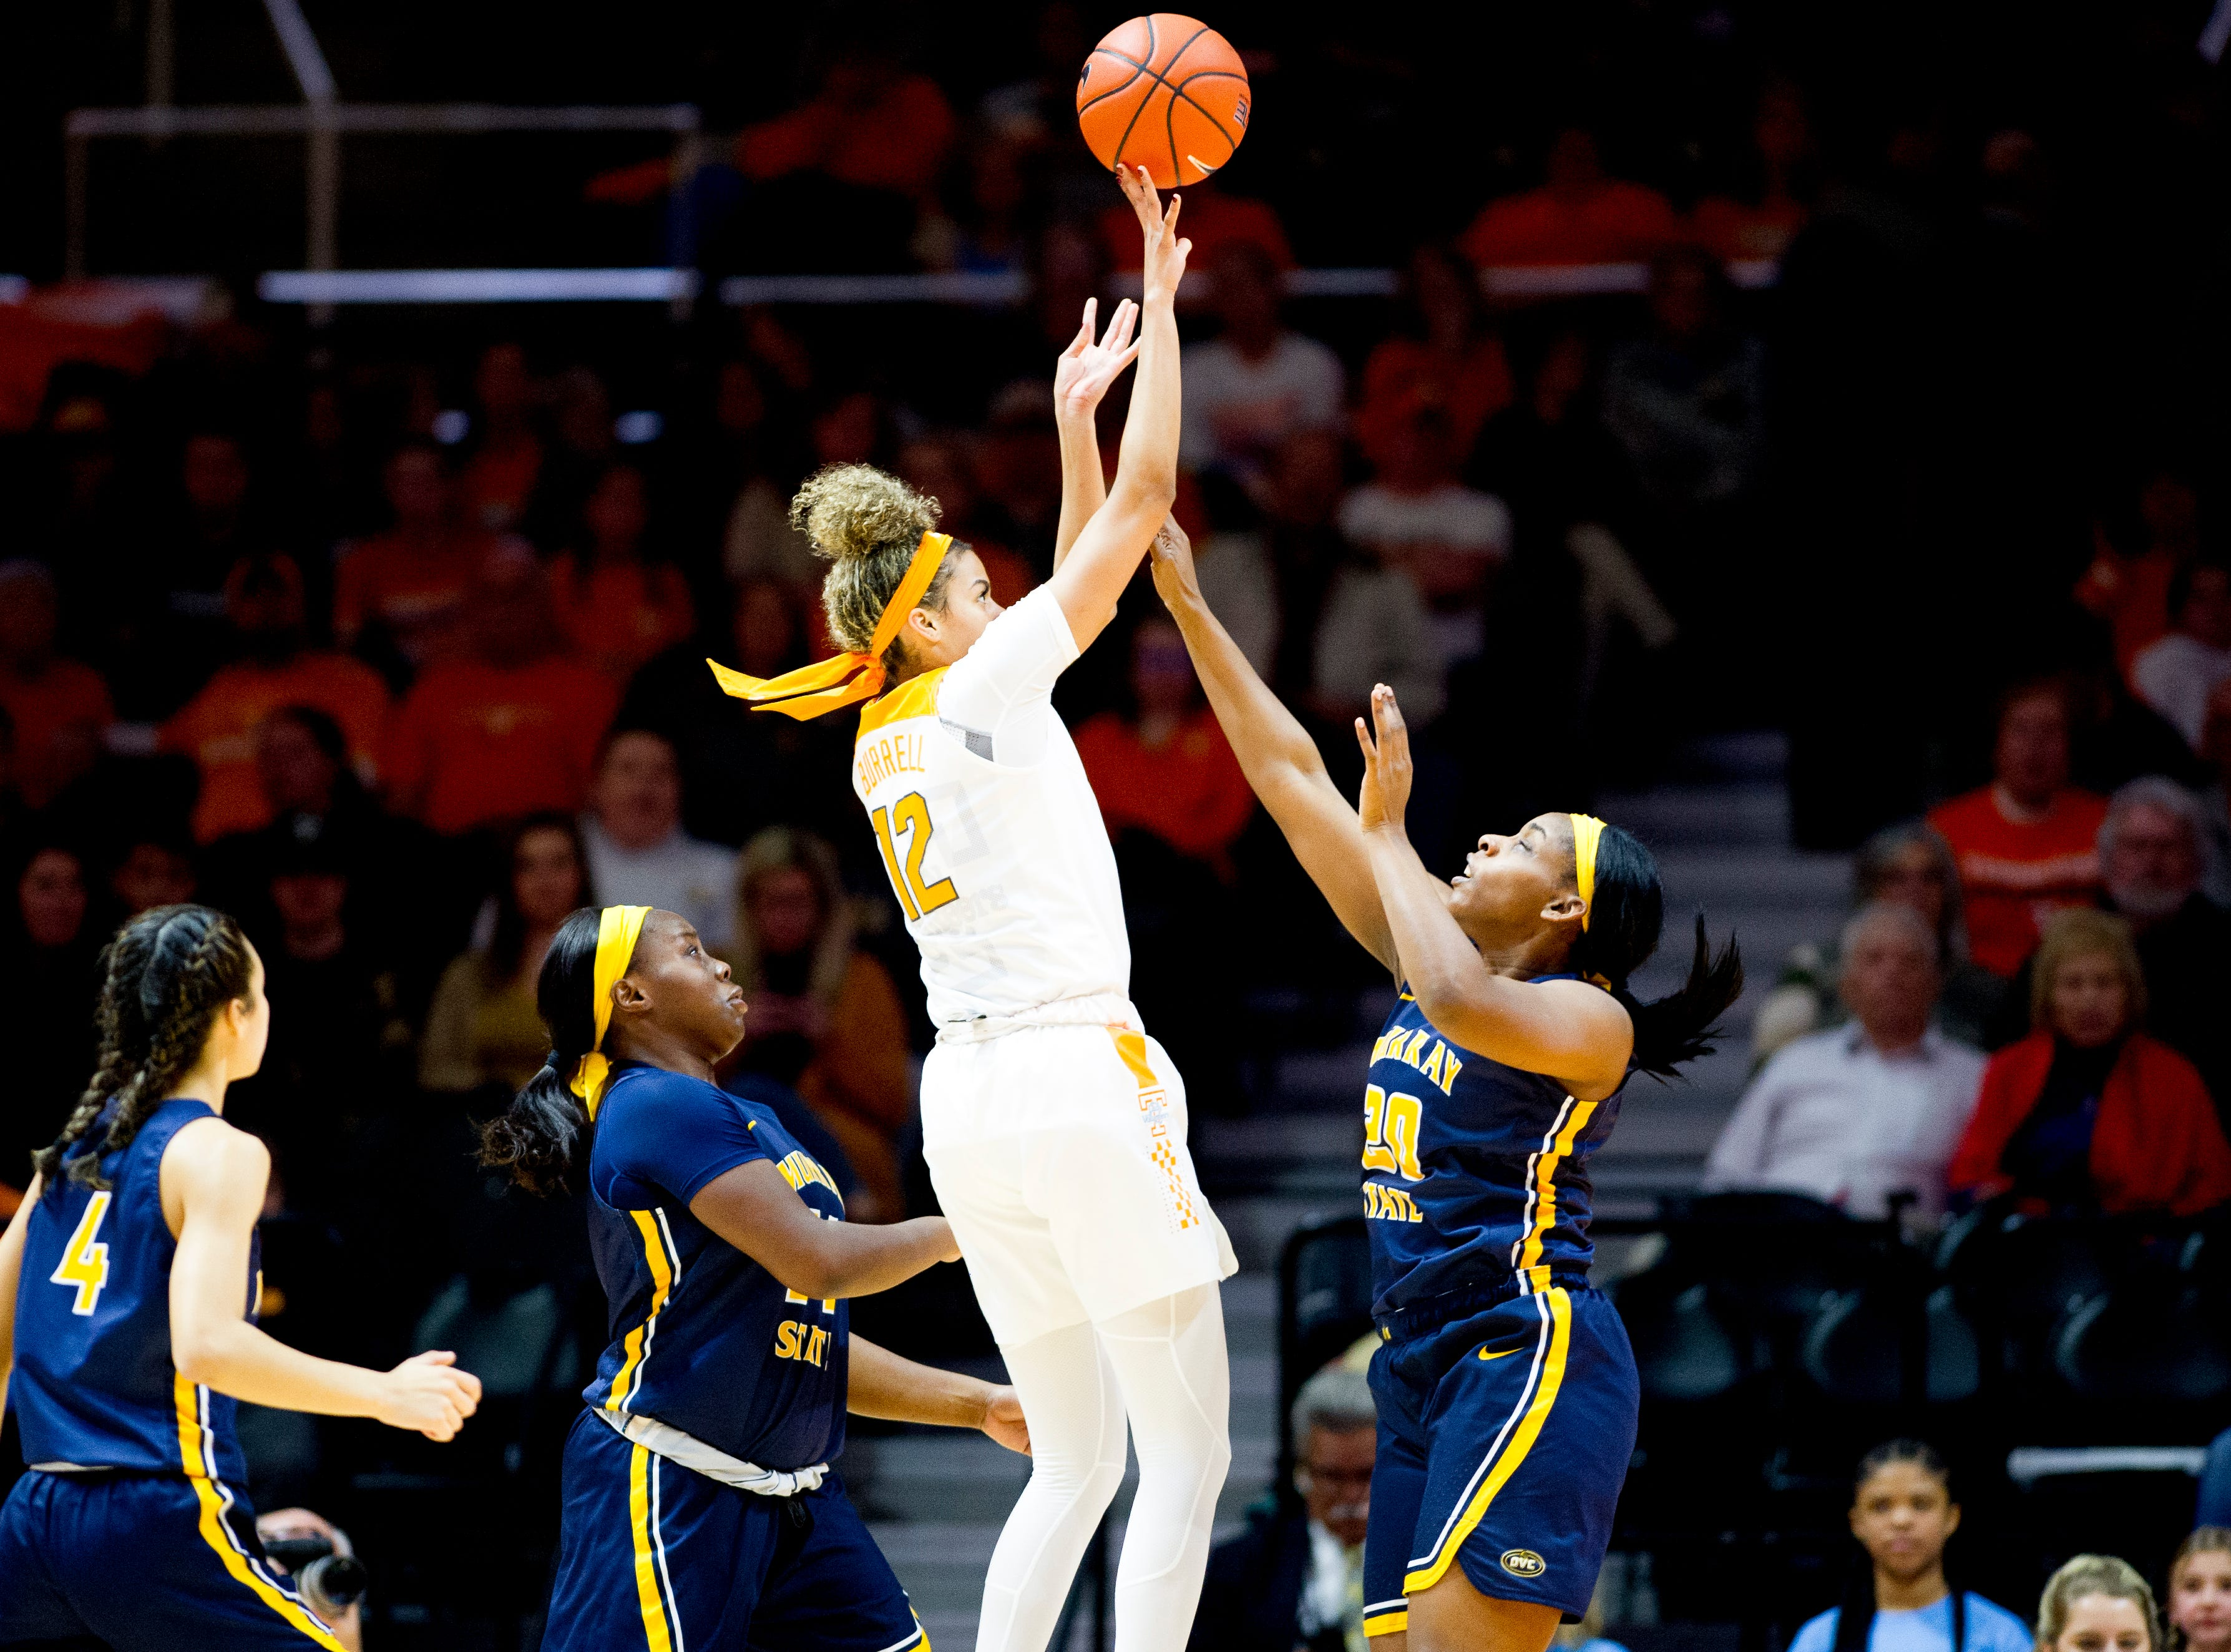 Tennessee guard/forward Rae Burrell (12) takes a shot past Murray State forward Cekeya Mack (20) during a game between the Tennessee Lady Vols and Murray State at Thompson-Boling Arena in Knoxville, Tennessee on Friday, December 28, 2018.